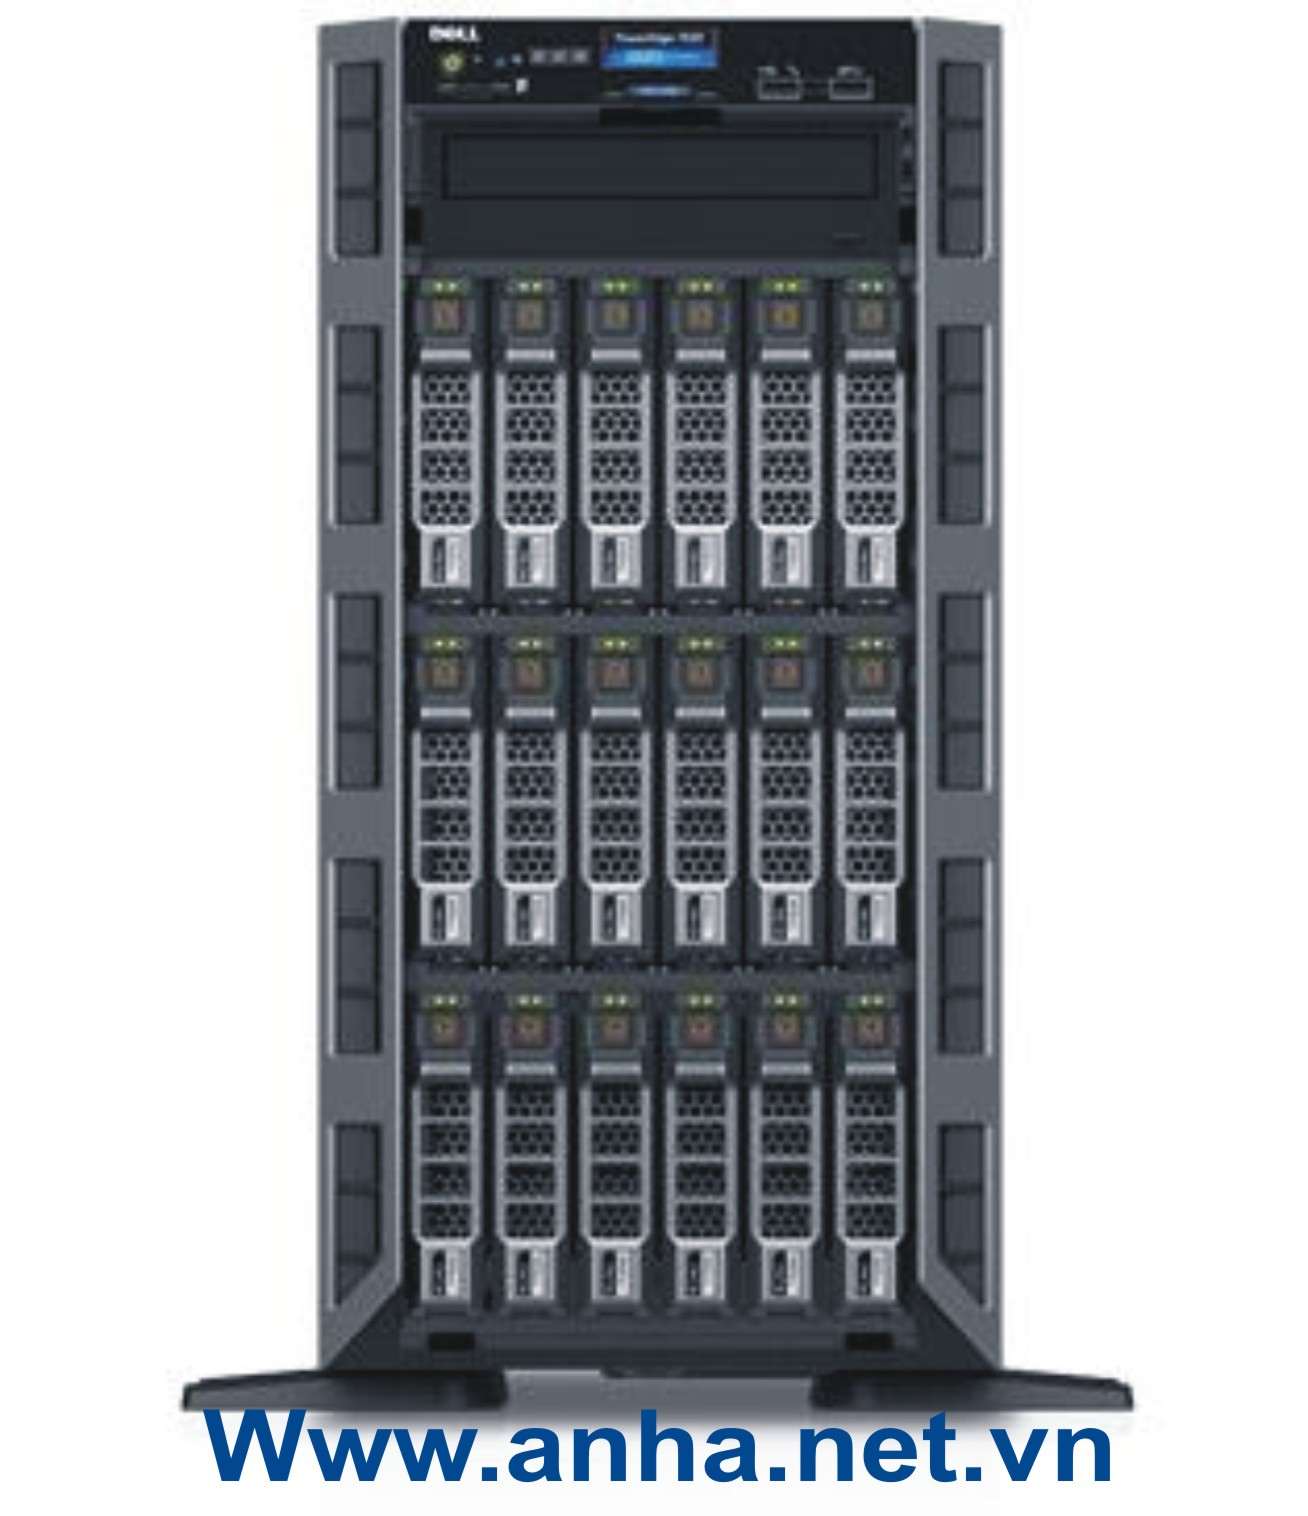 Máy chủ DELL PowerEdge T630 E5-2609v3